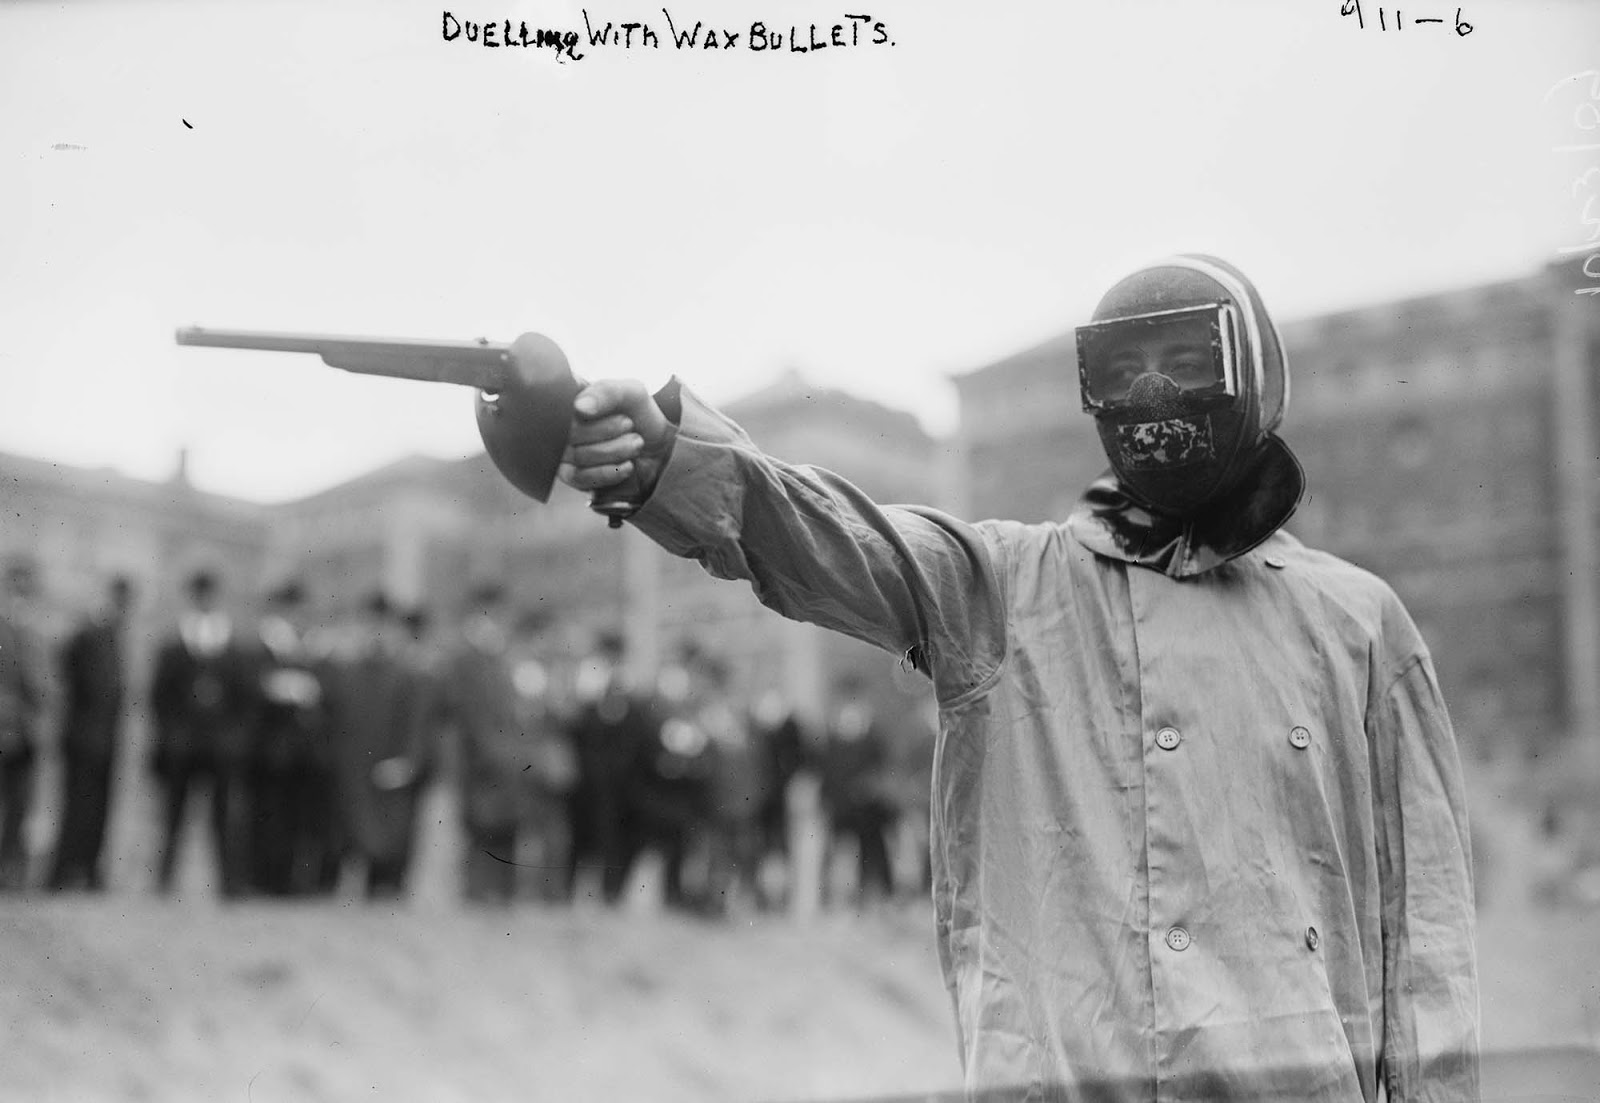 Duelling with wax bullets, New York, 1909.